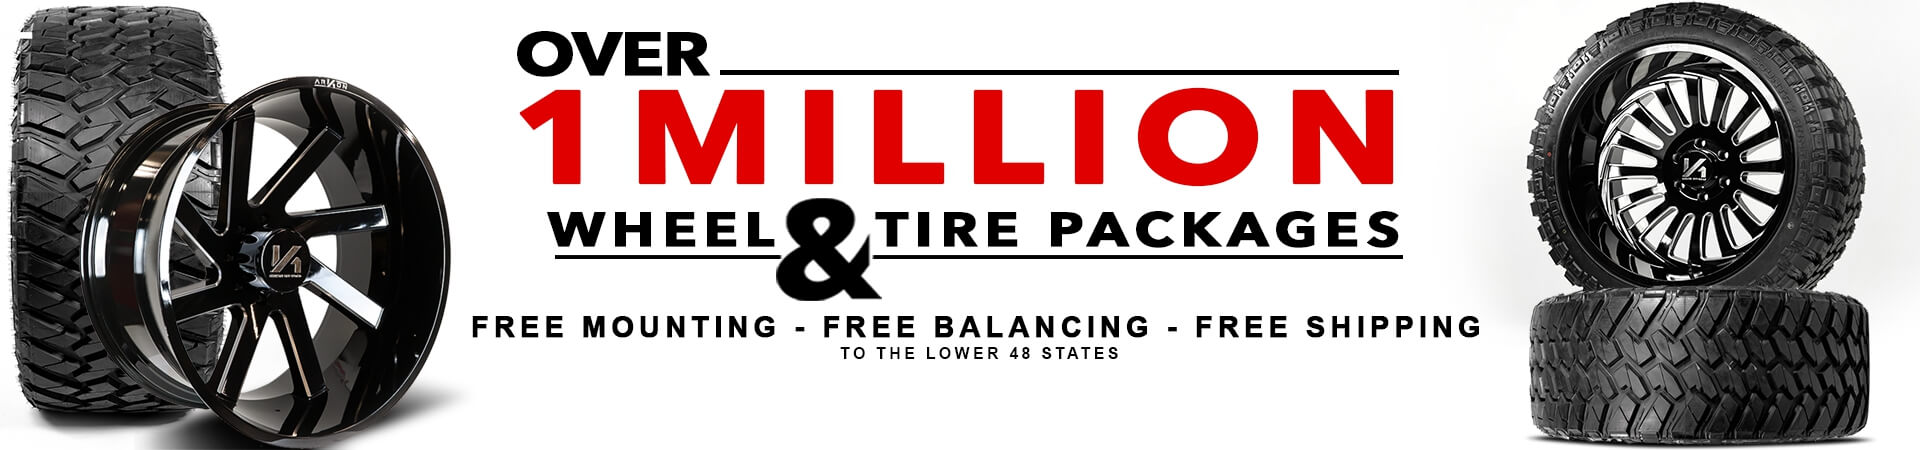 Truck wheel and tire packages online banner